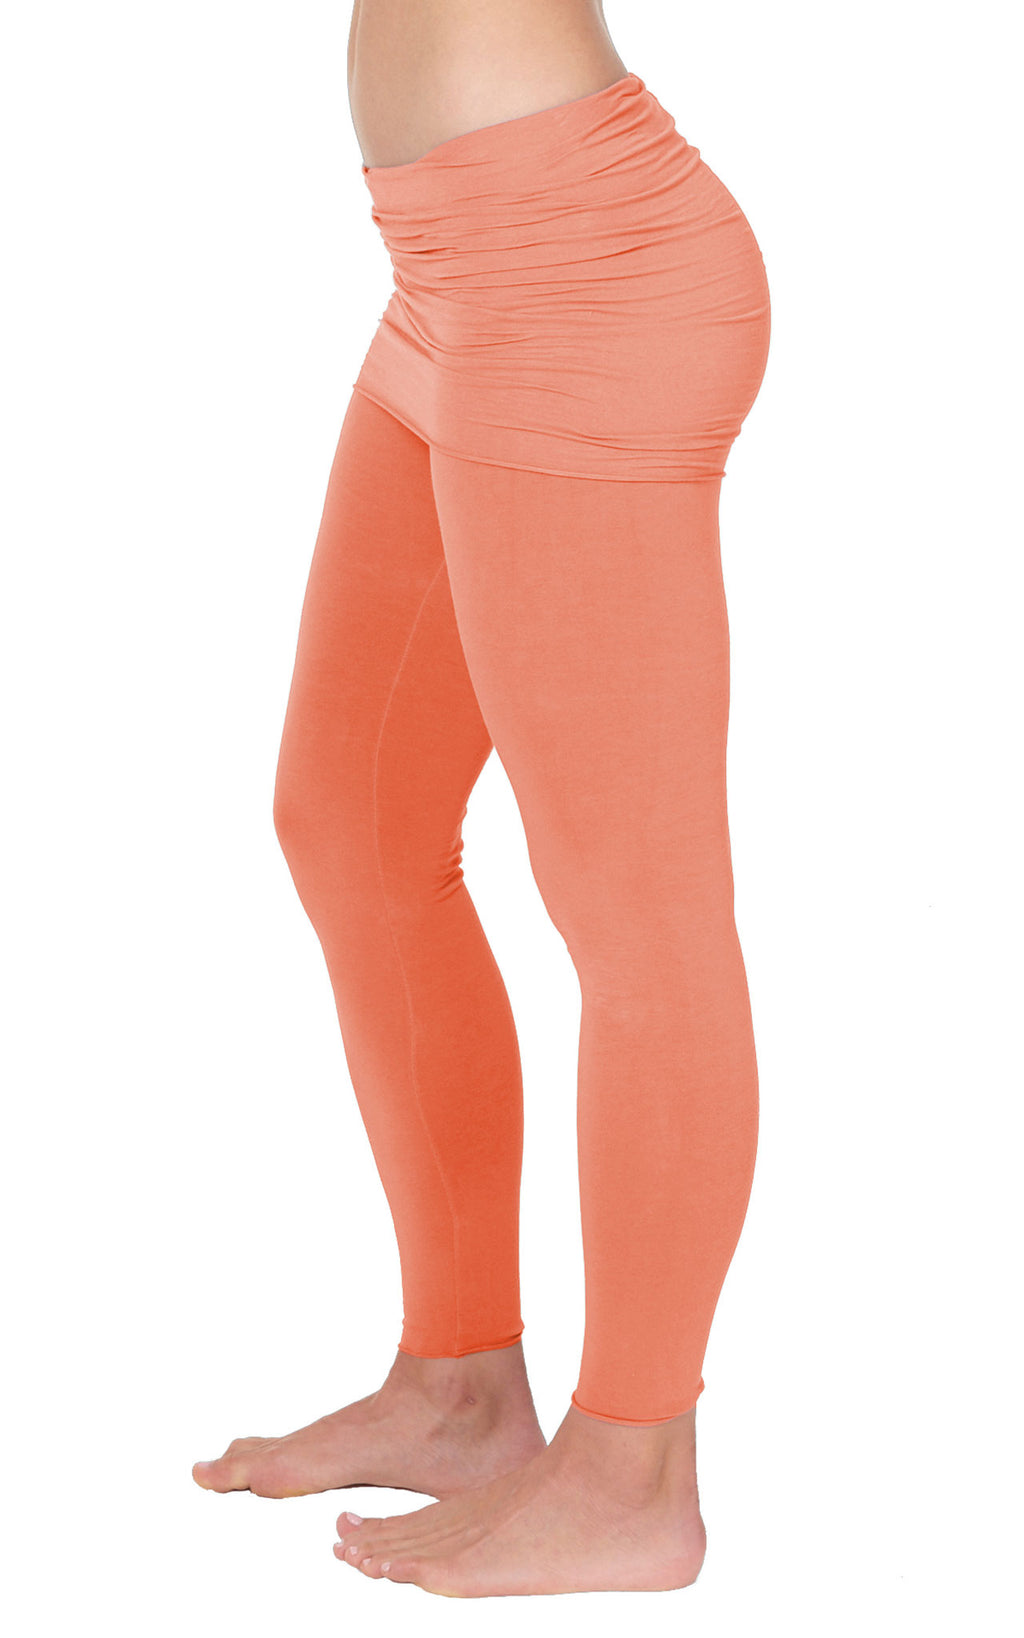 Nomad Legging in Coral Reef